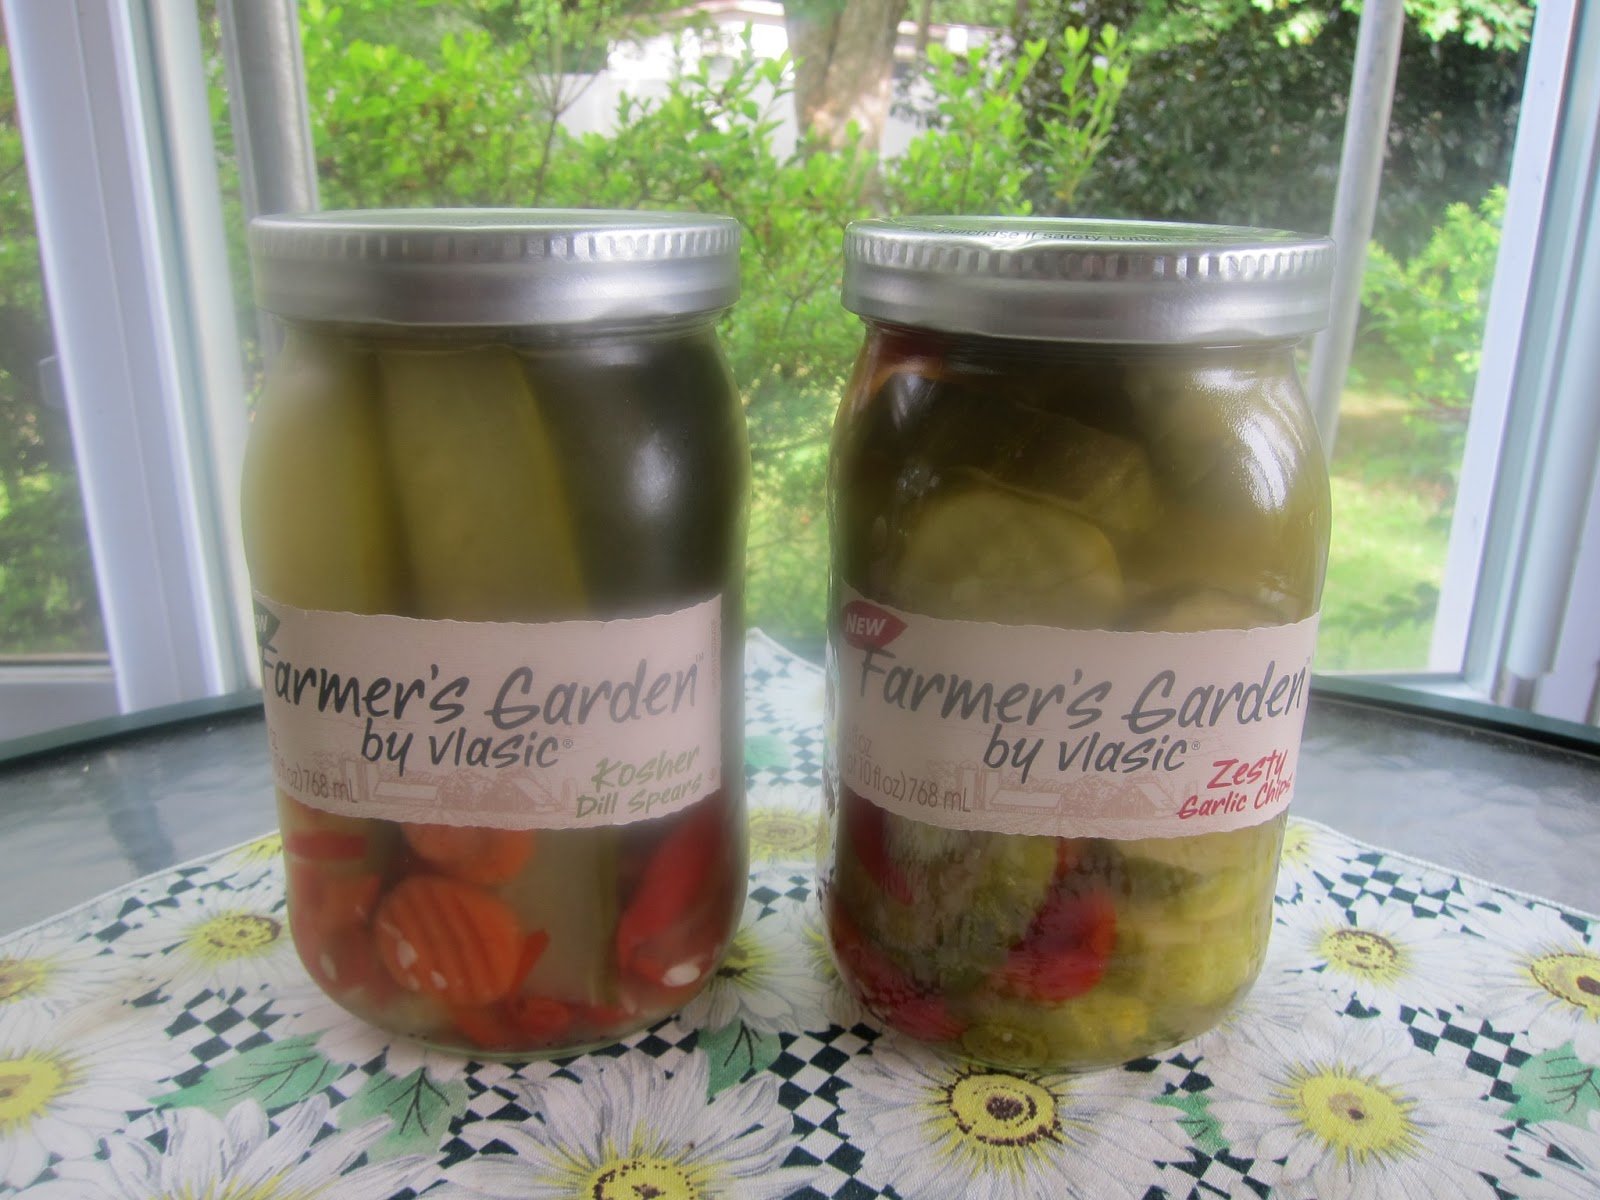 Barbecue Master Farmer 39 S Garden Vlasic Pickles When You Crave Home Canned Flavor